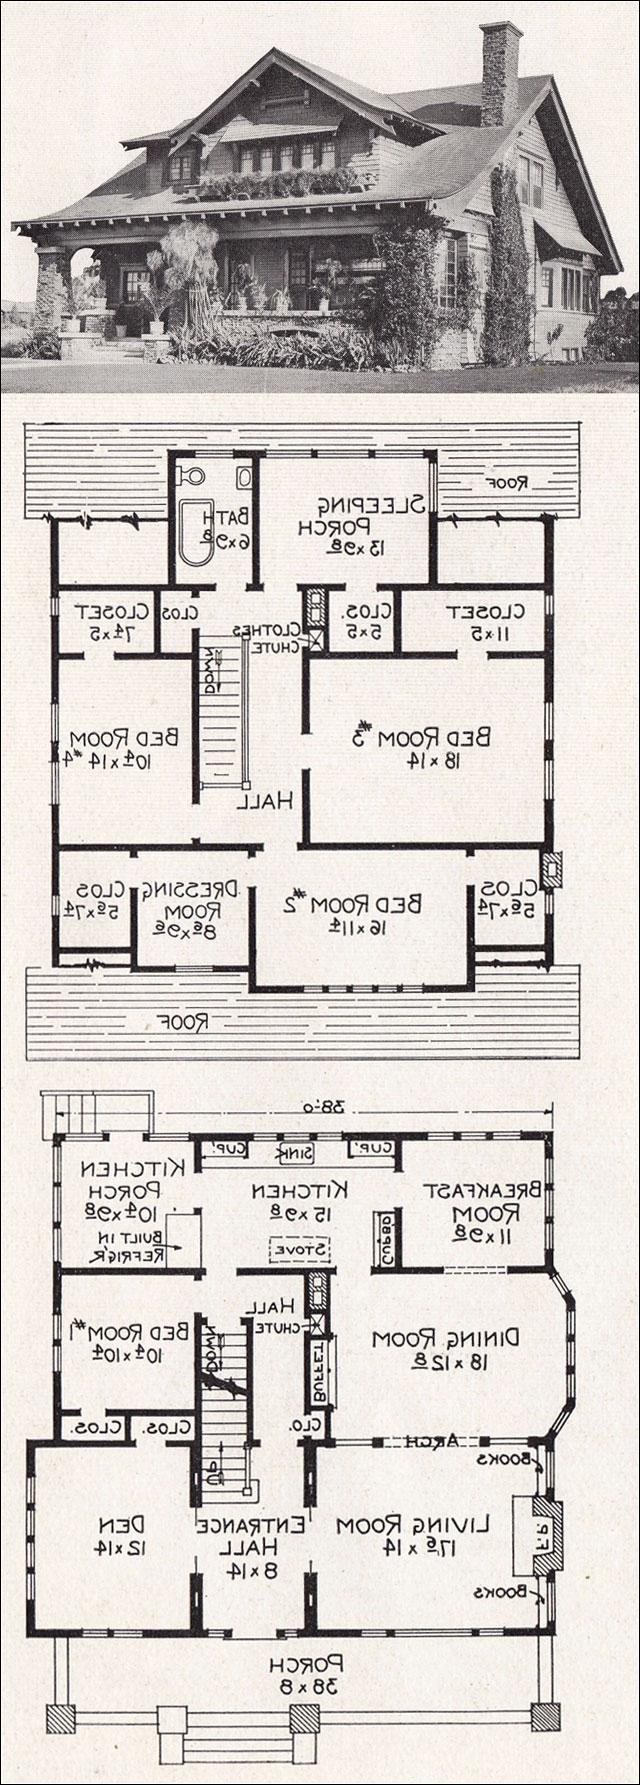 Craftsman Bungalow House Plans With Photos: california bungalow floor plans